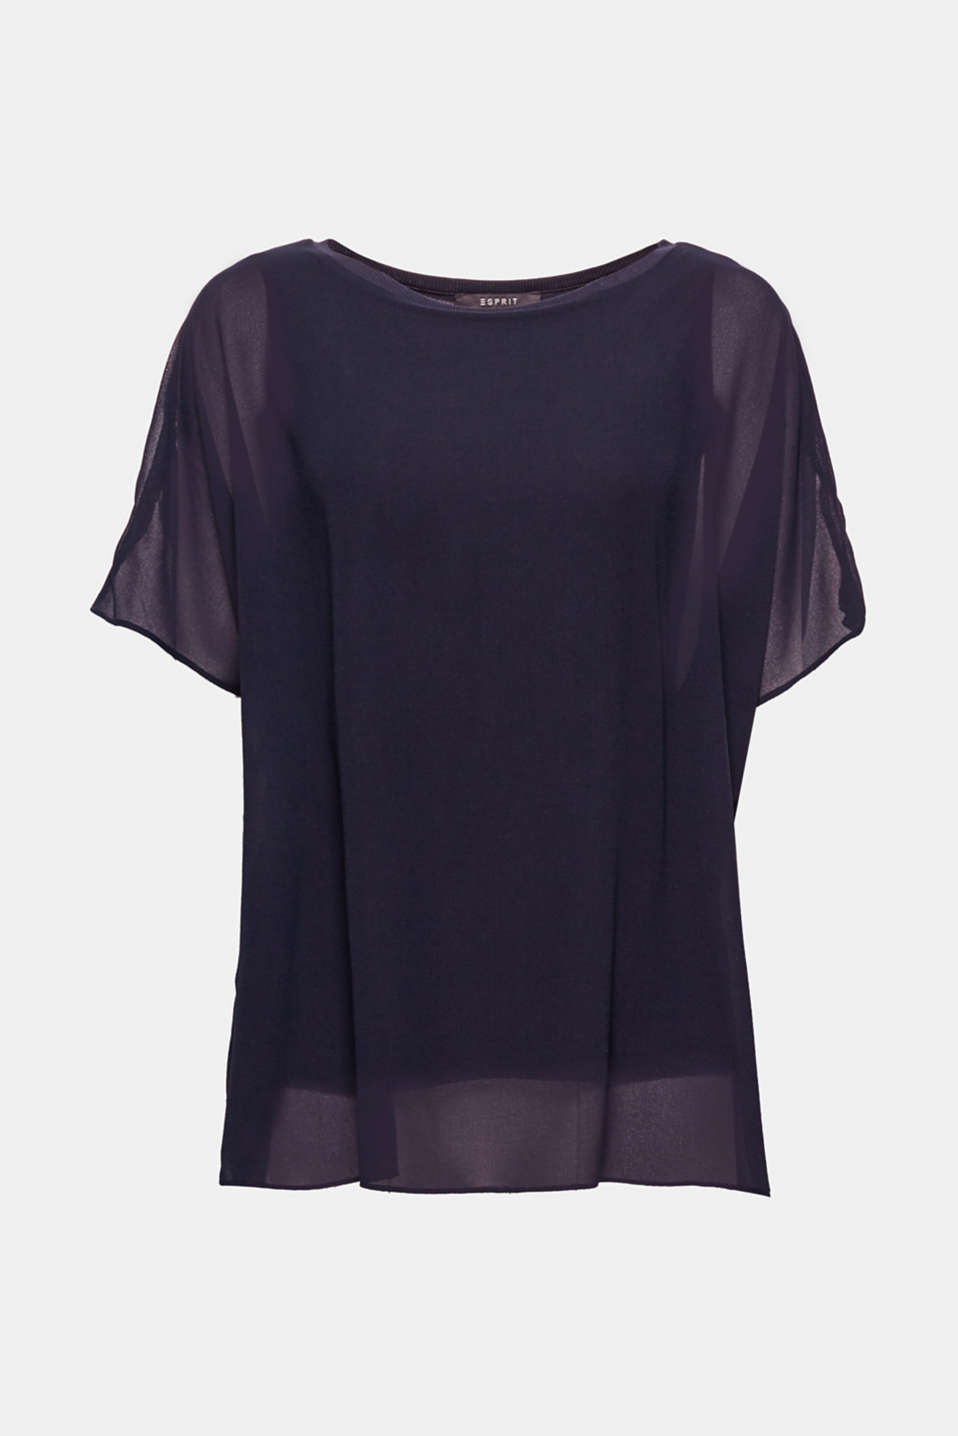 This top is suitable for lots of styling ideas, both casual and elegant.